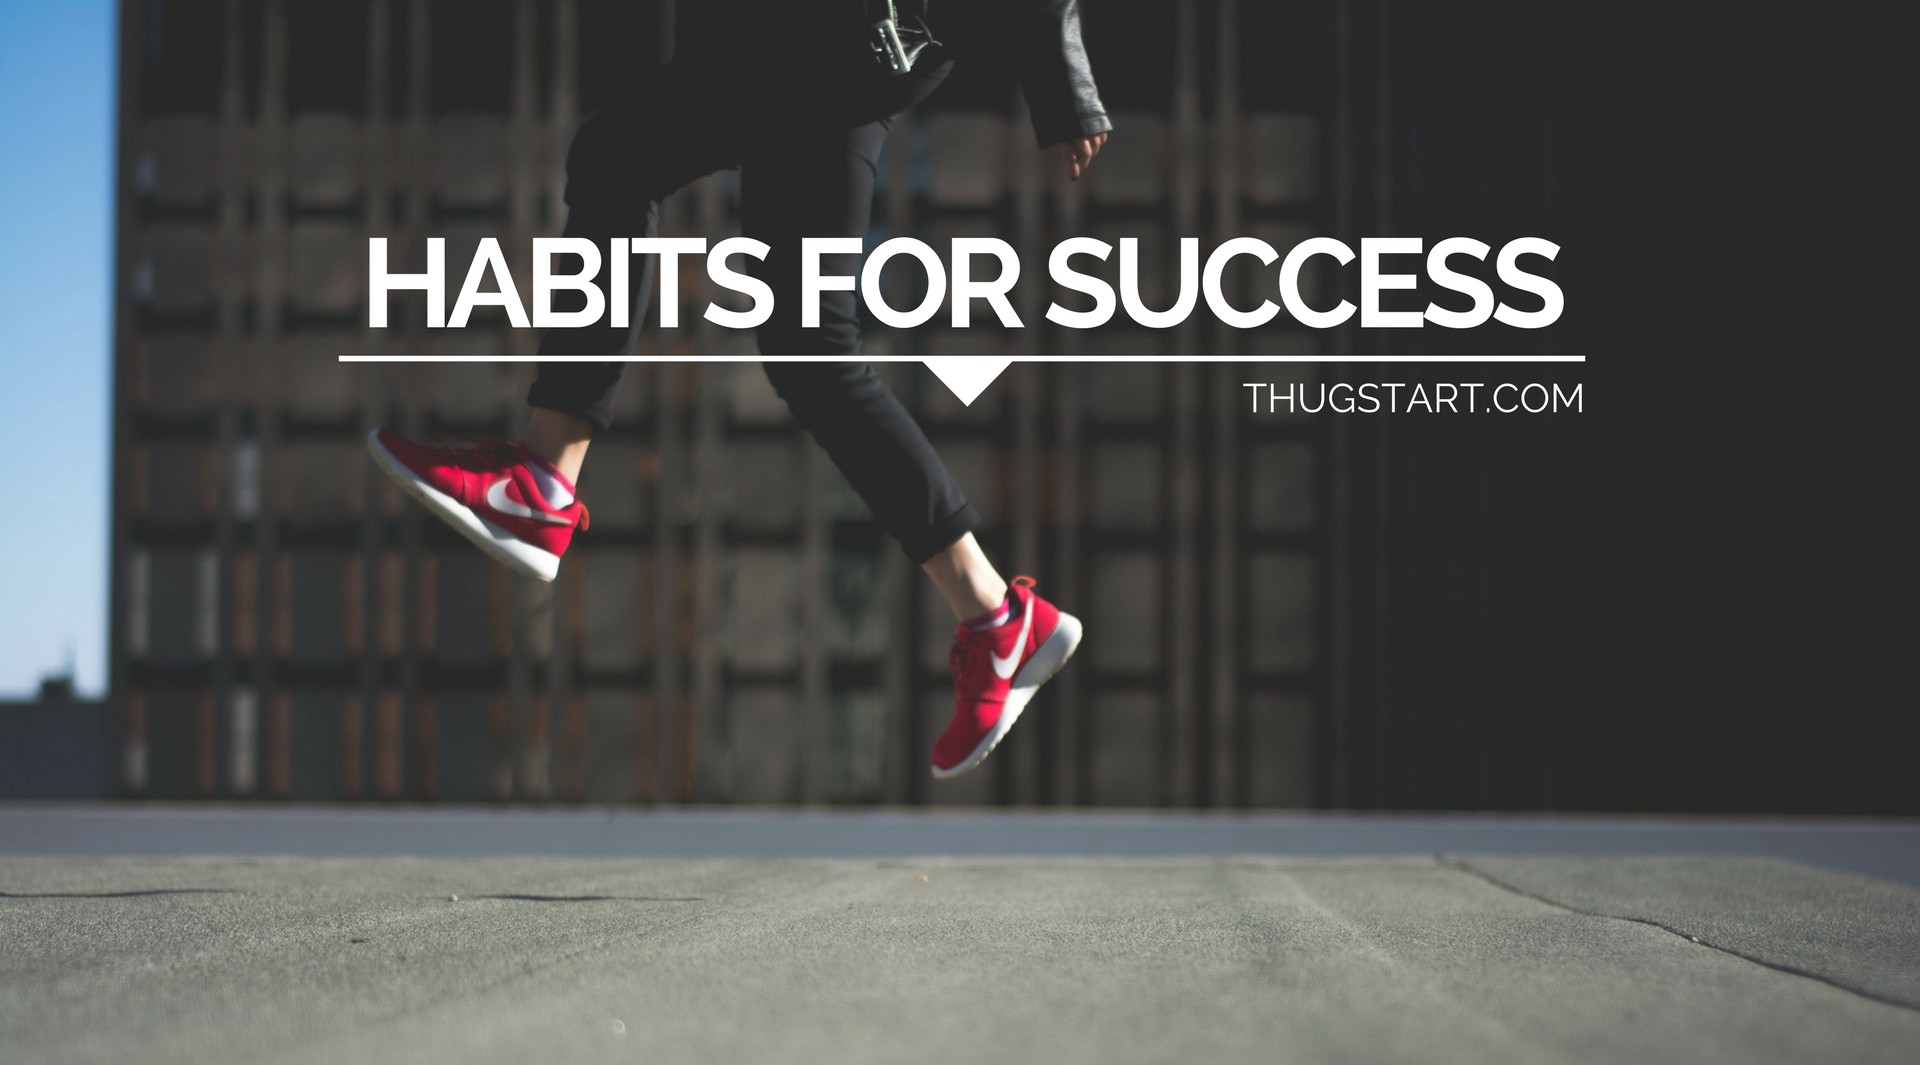 7 Habits of Highly Successful People!